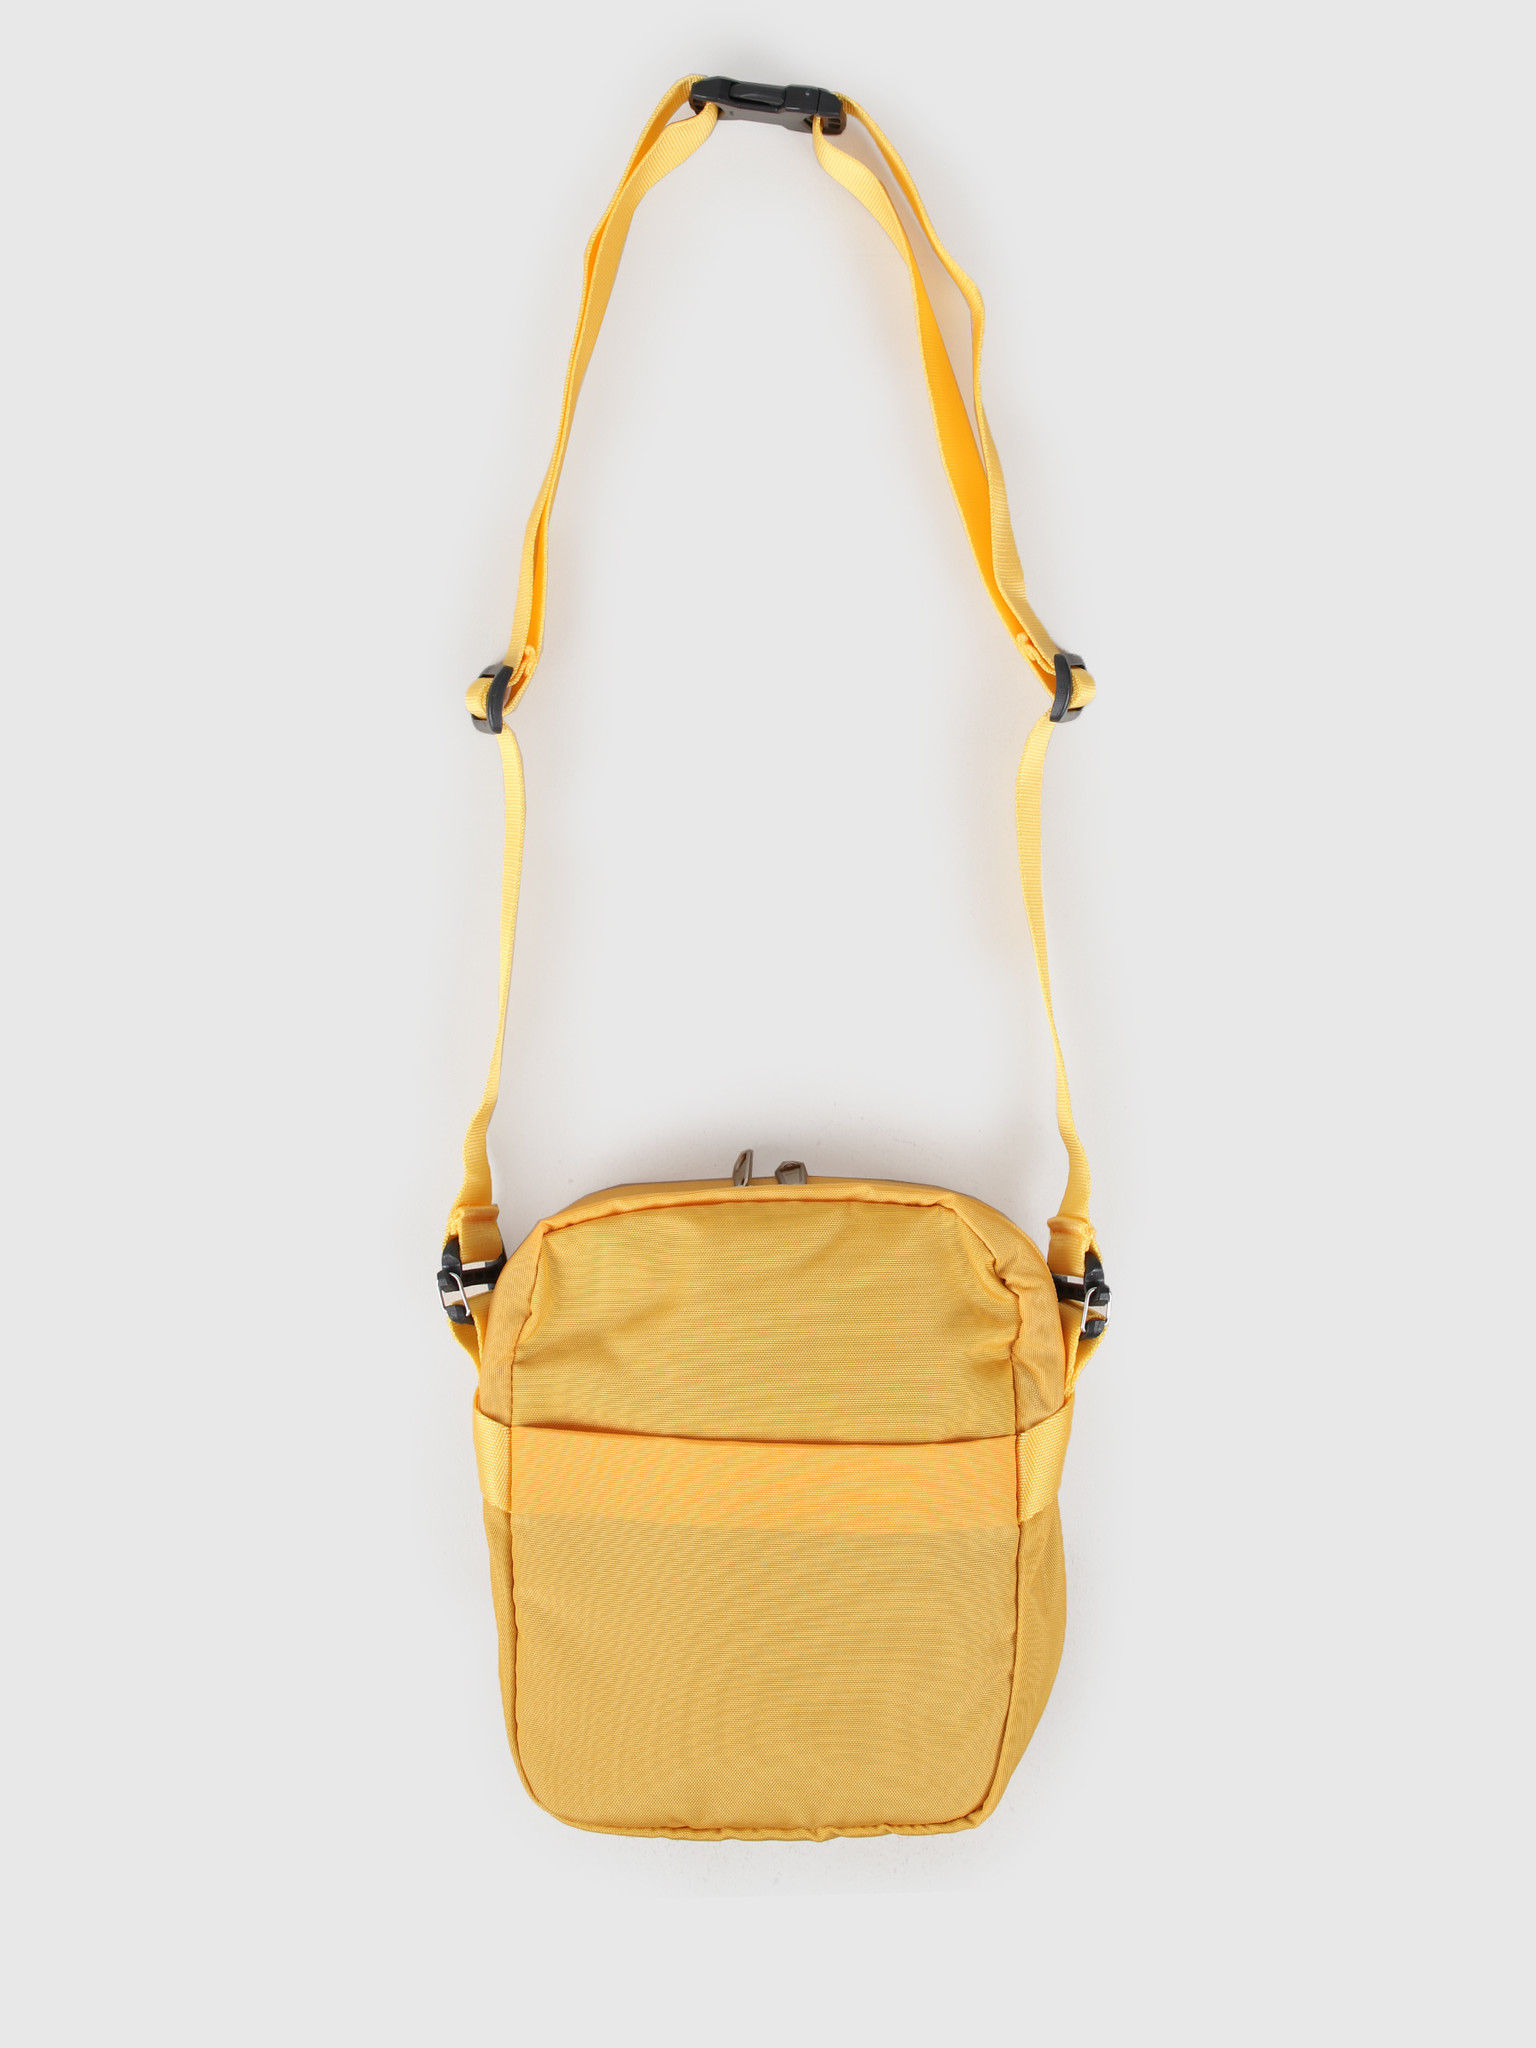 The North Face The North Face Convertible Shoulder Bag Yellow Black T93BXBLR0